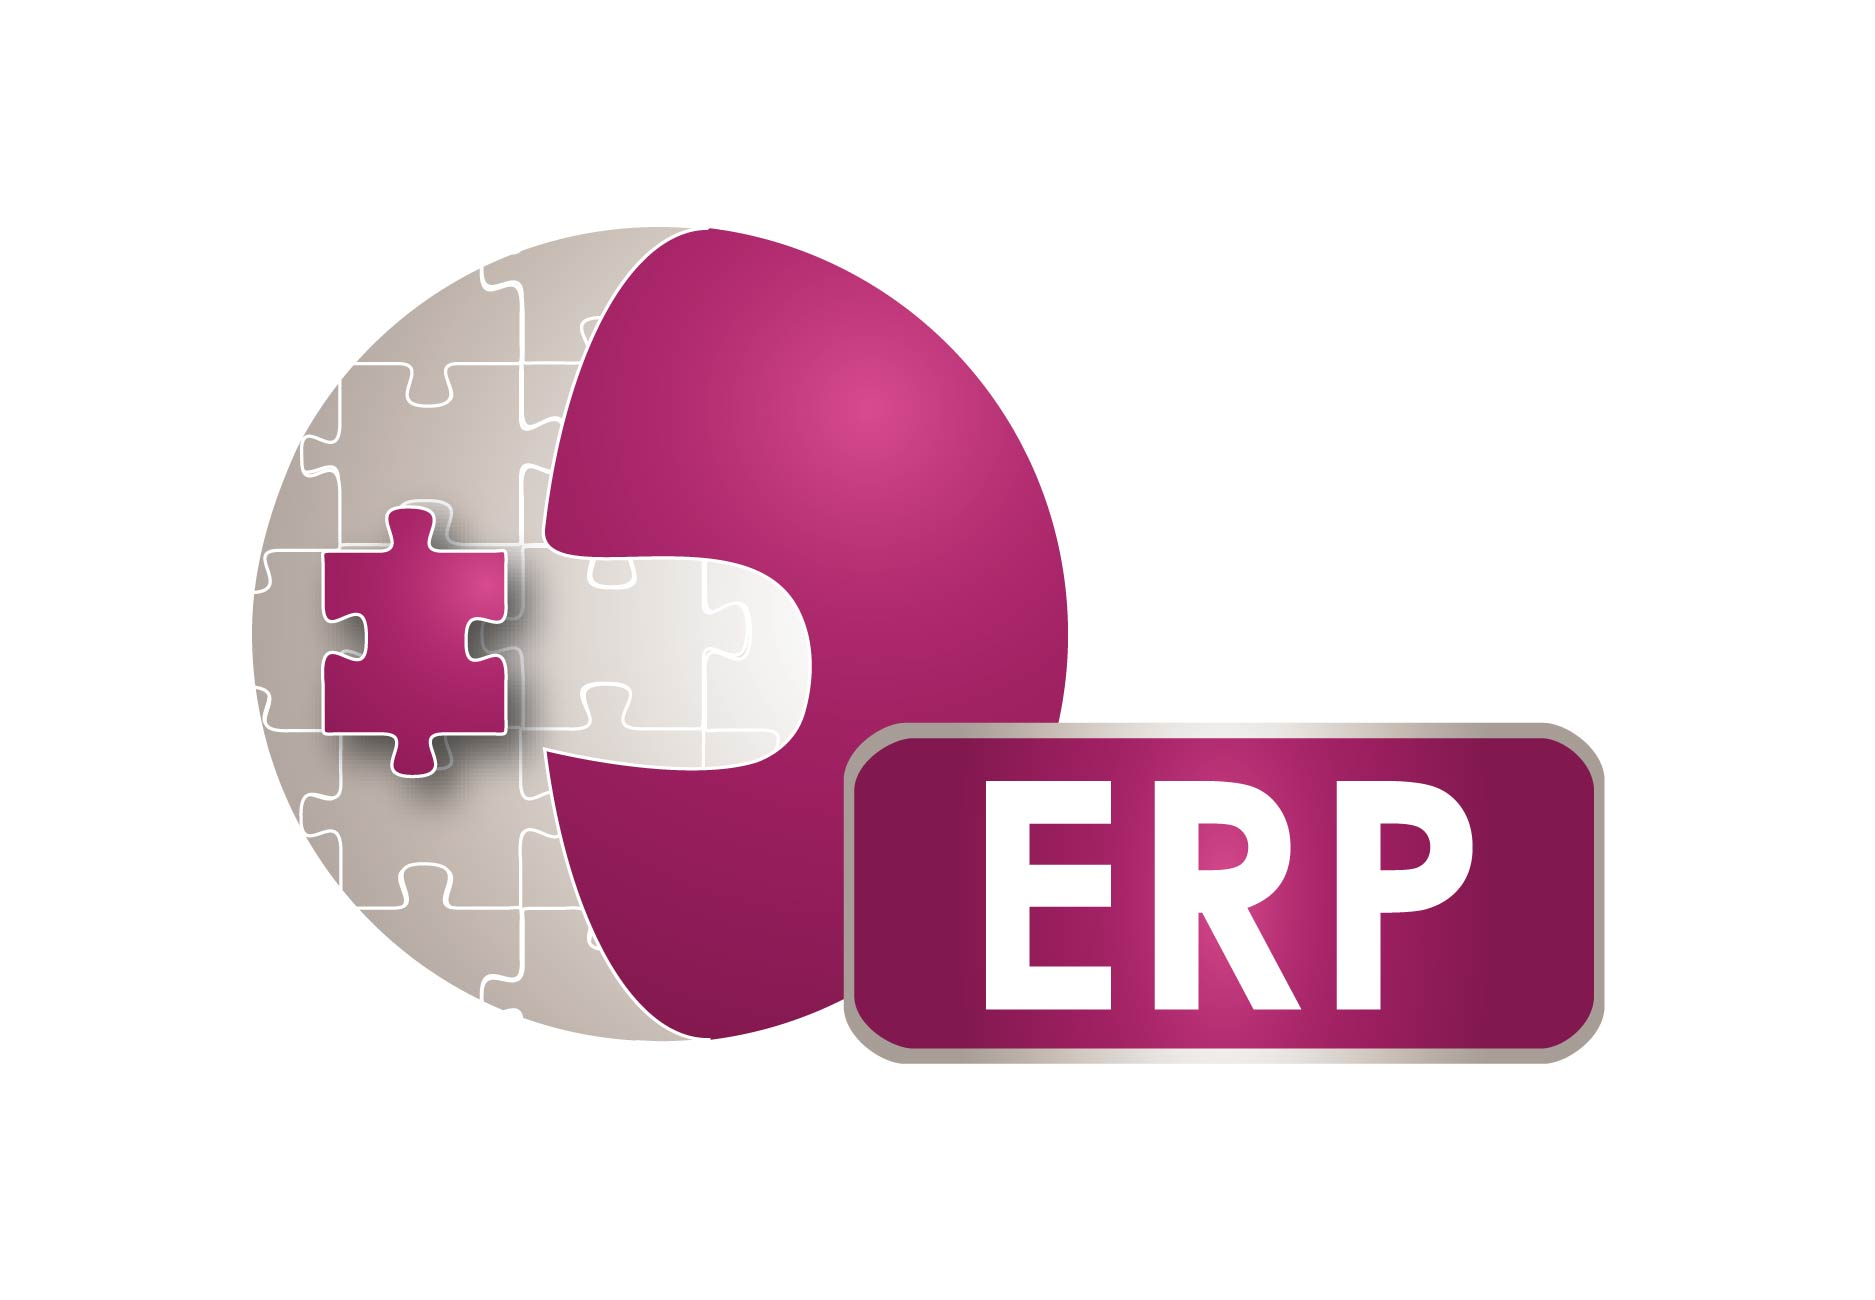 ERP stands for enterprise resource planning. Webway ERP is software that allows companies of all sizes to manage their business, including sales, procurement, inventory management, financials, human resource and projects. Our ERP software collect data to provide you with information that will help you to gain efficiencies, cut costs, or make additional investments.